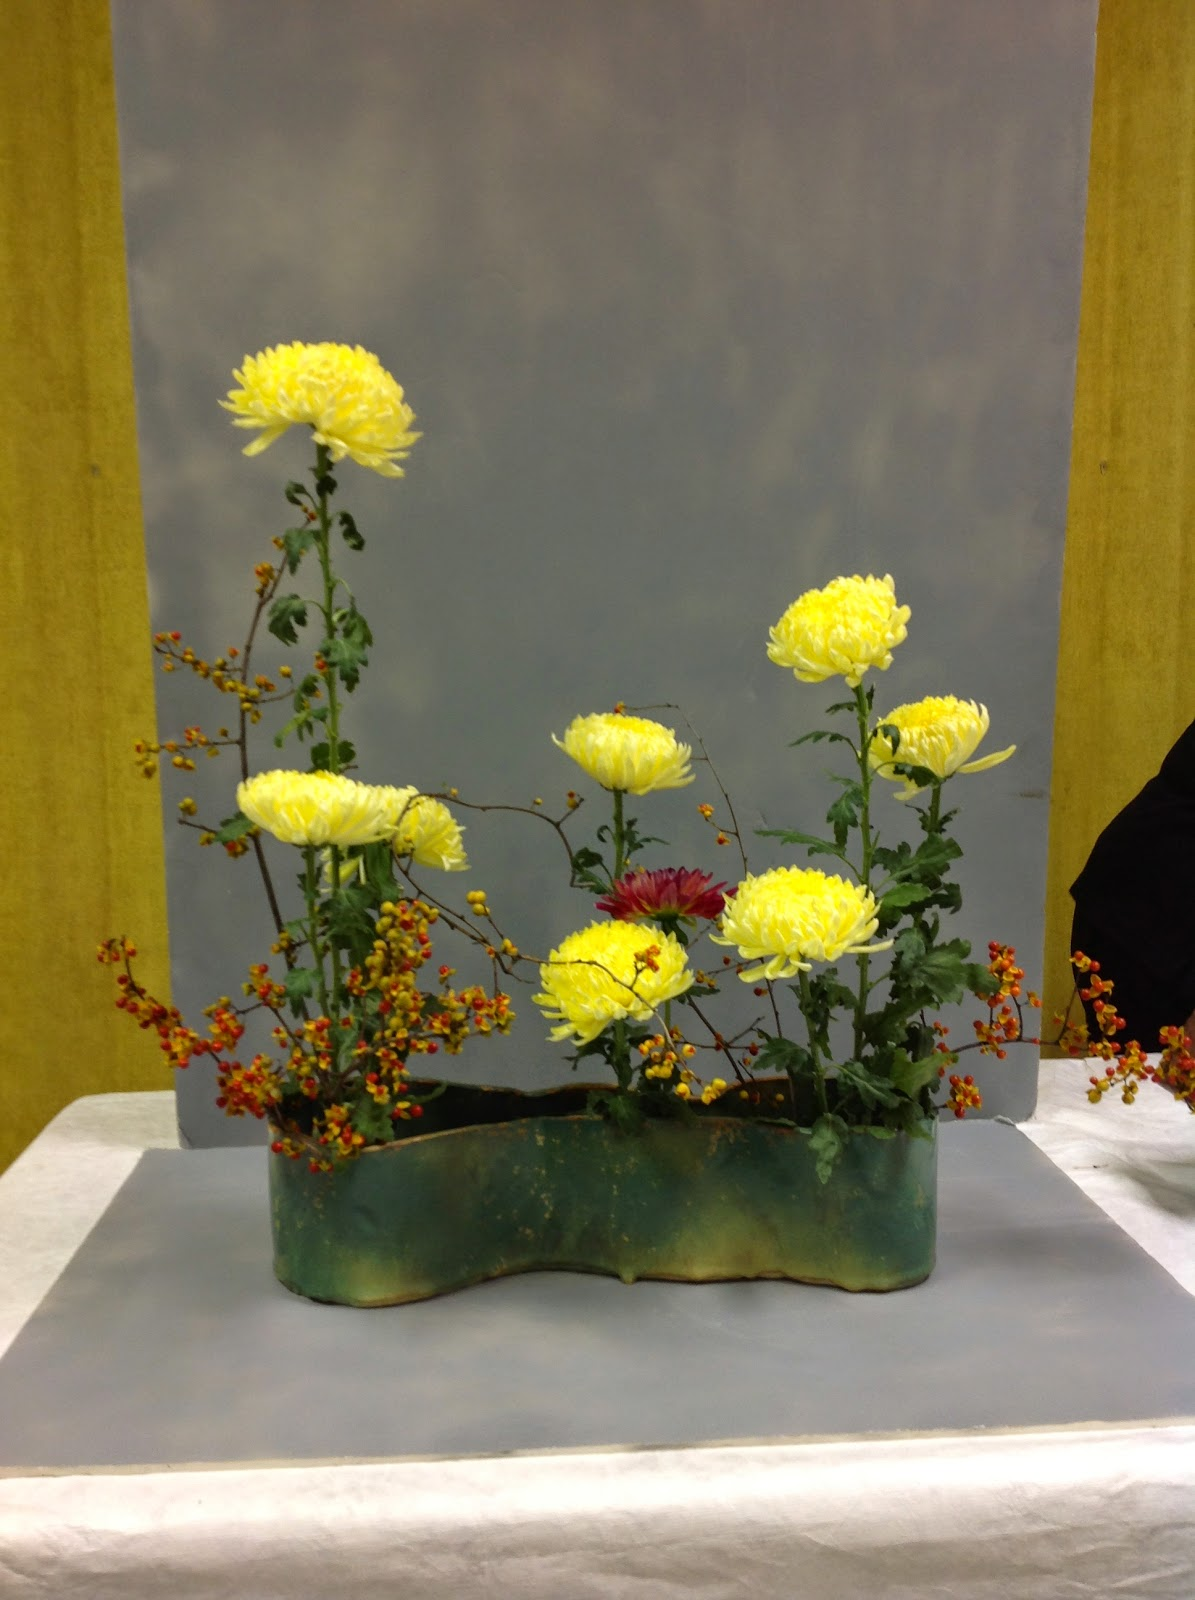 Design By: New Garden Club Journal: Mobile, Mono Botanic,Multi